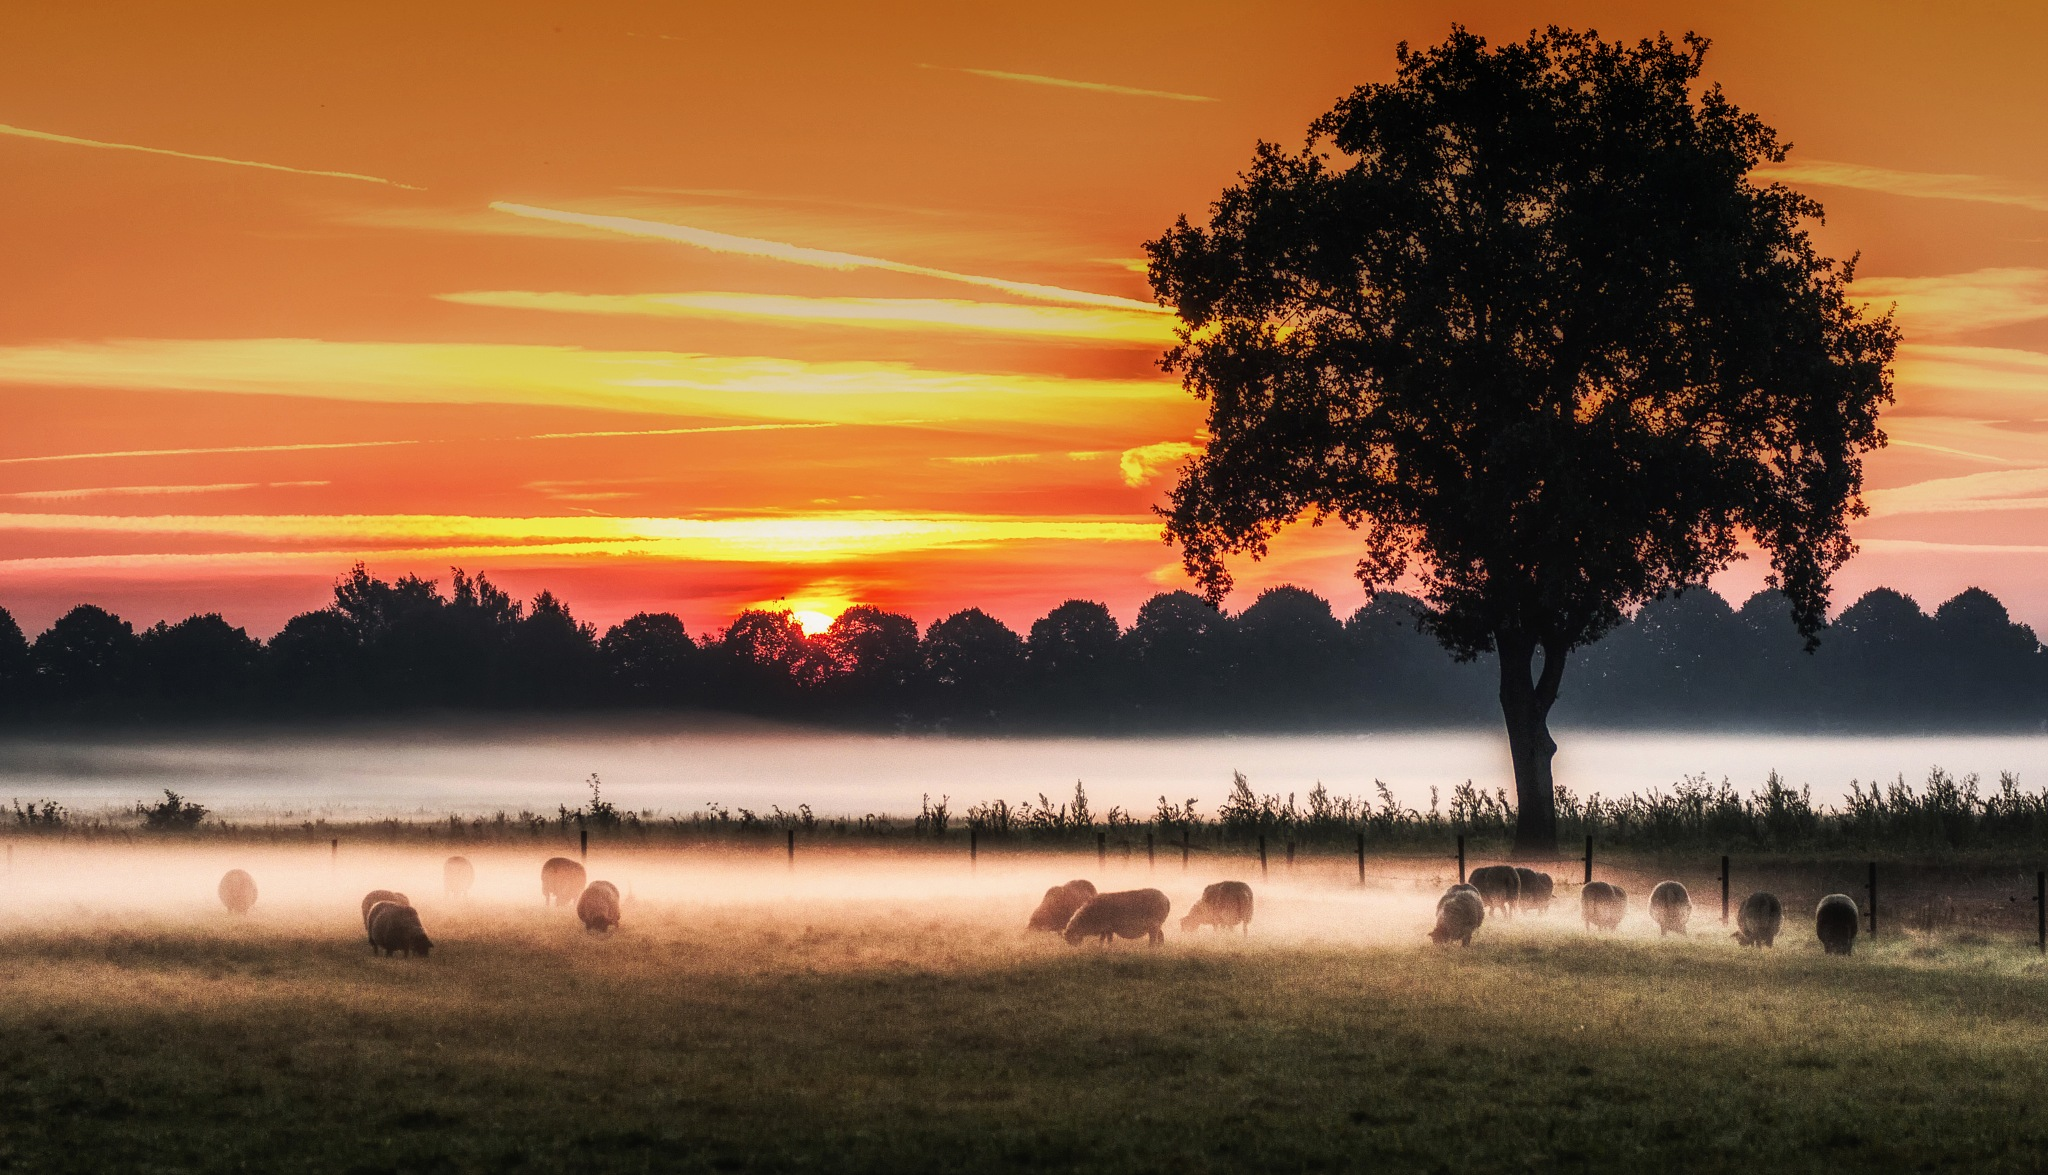 Sheep in misty sunrise by Theo Hermsen